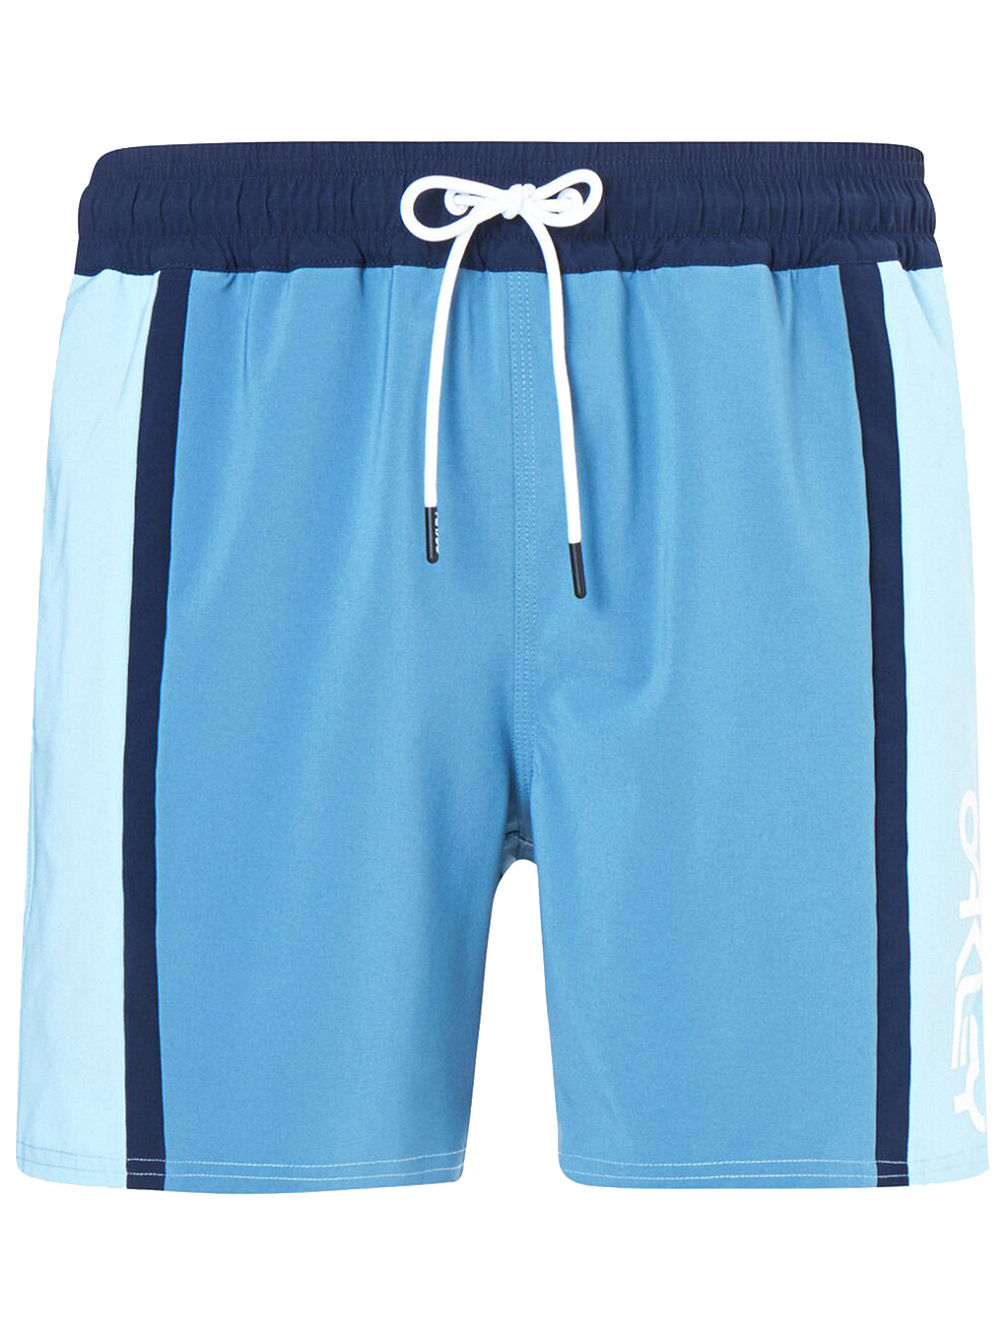 "B1B Color Block 16"" Boardshorts"